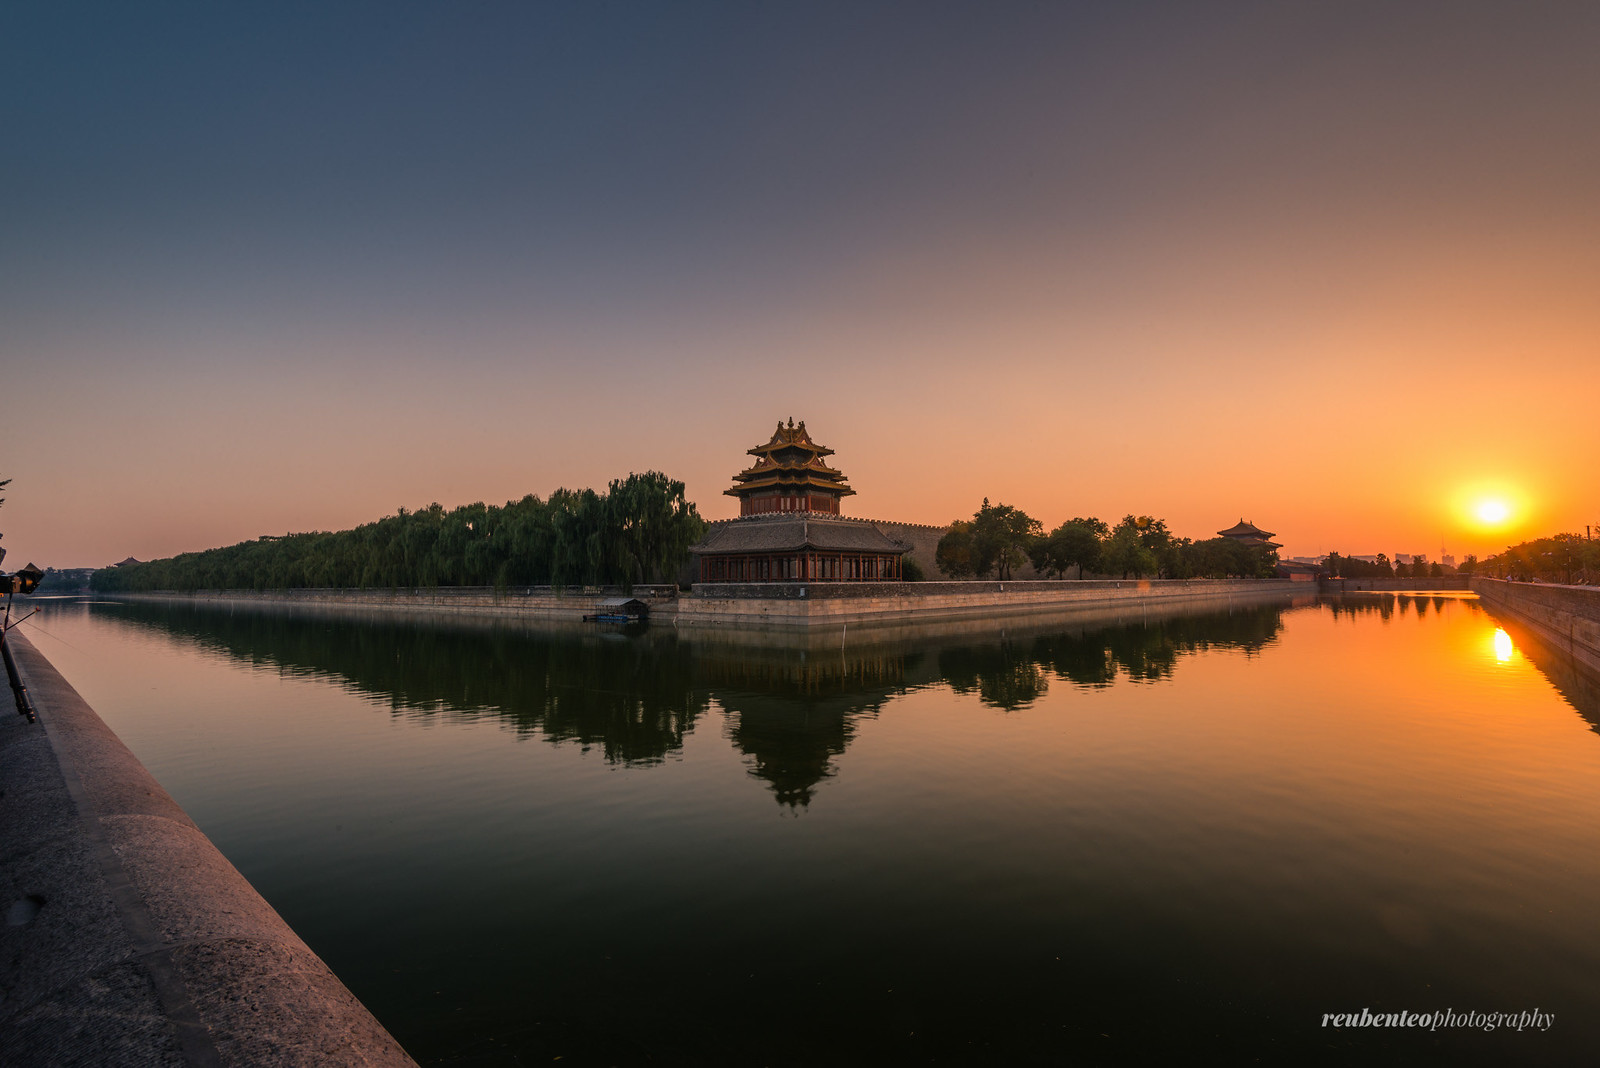 Sunset at the Corner Tower of the Forbidden City